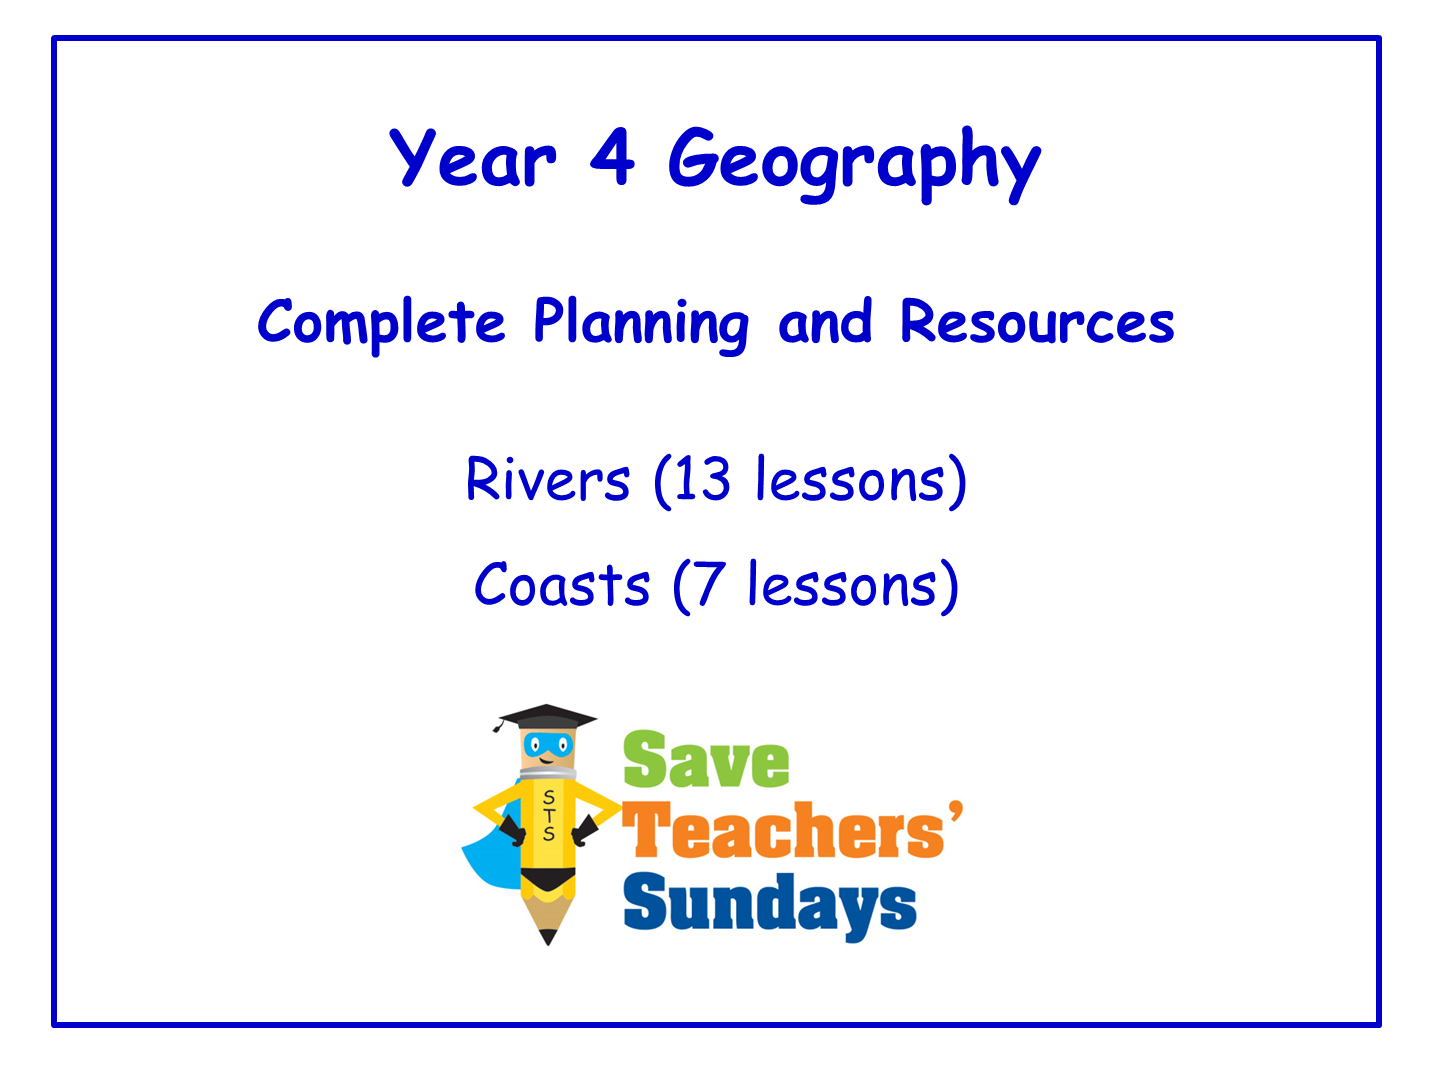 Year 4 Geography Planning and Resources